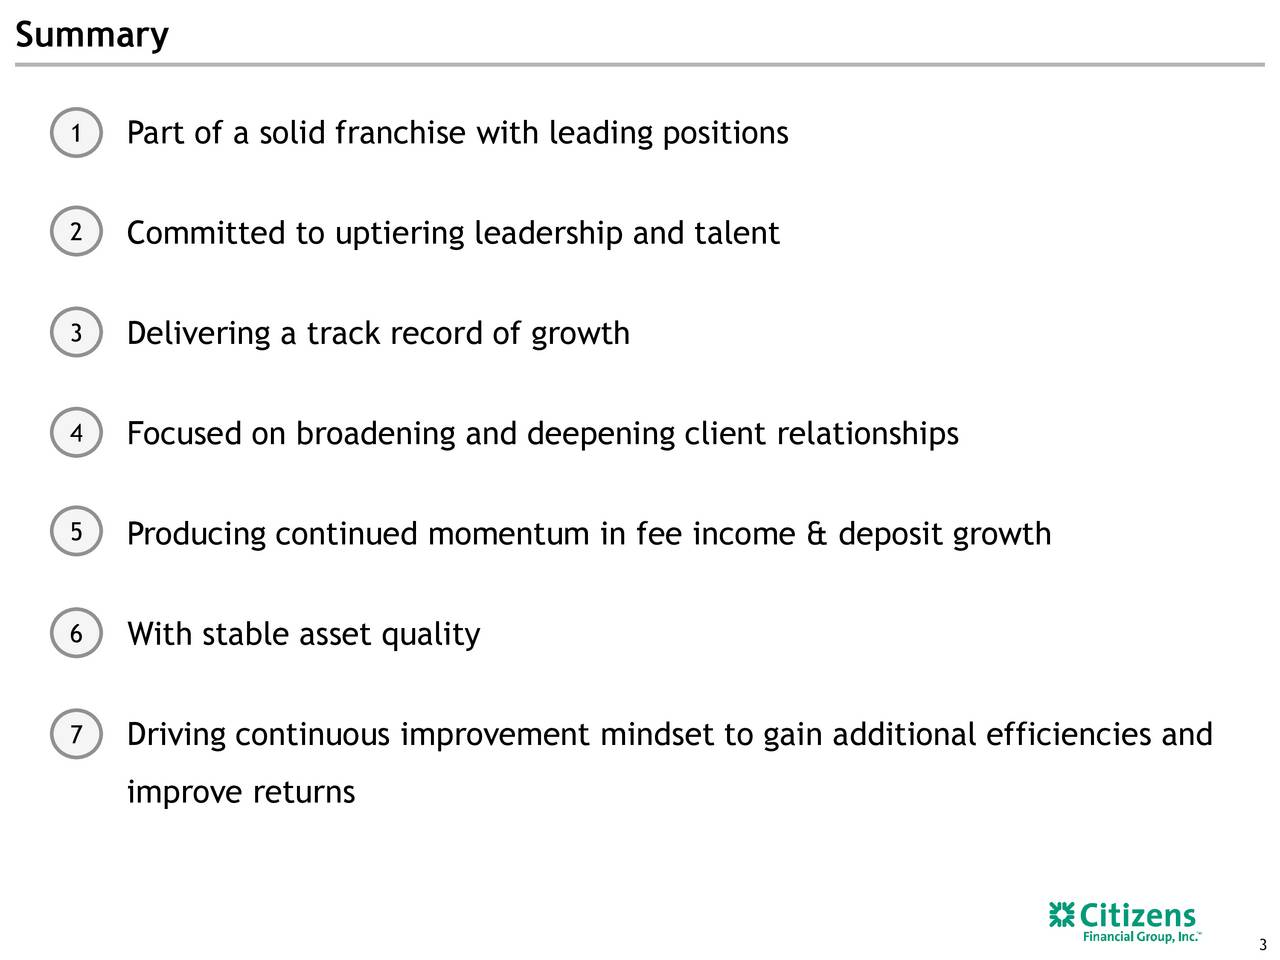 1 Part of a solid franchise with leading positions 2 Committed to uptiering leadership and talent 3 Delivering a track record of growth 4 Focused on broadening and deepening client relationships 5 Producing continued momentum in fee income & deposit growth 6 With stable asset quality 7 Driving continuous improvement mindset to gain additional efficiencies and improve returns